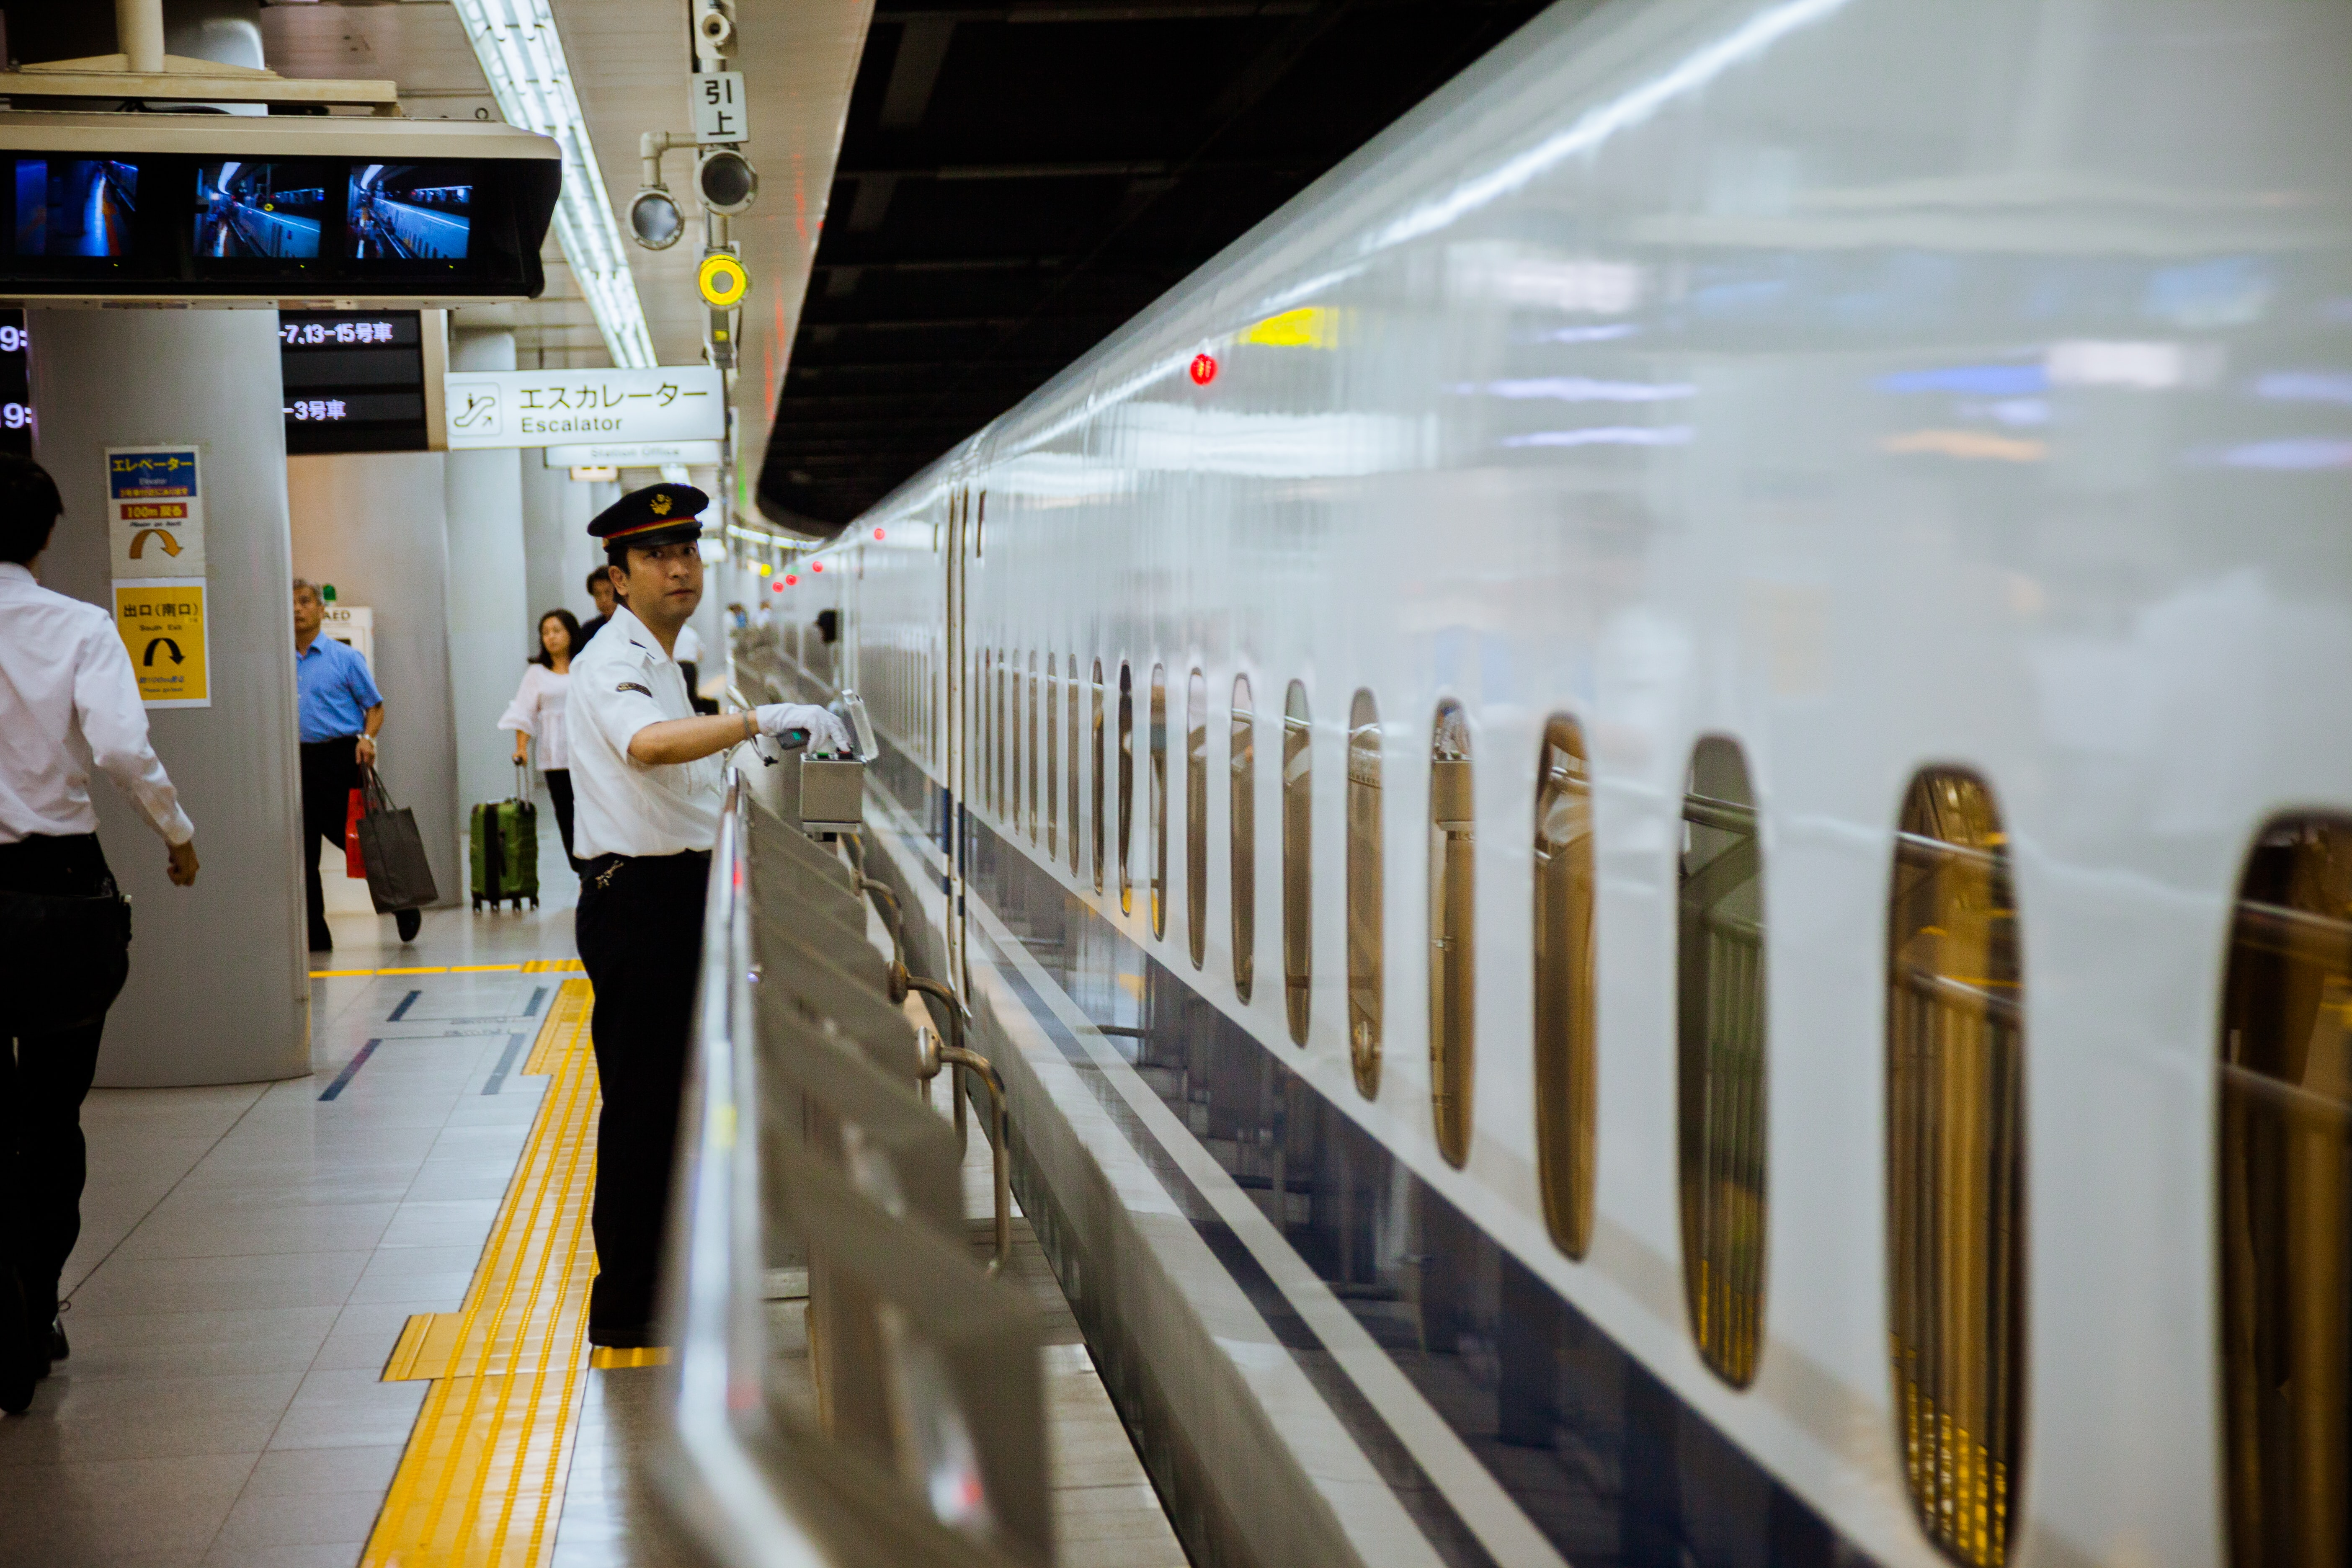 Metro guard tends to the subway train at Tokyo Station